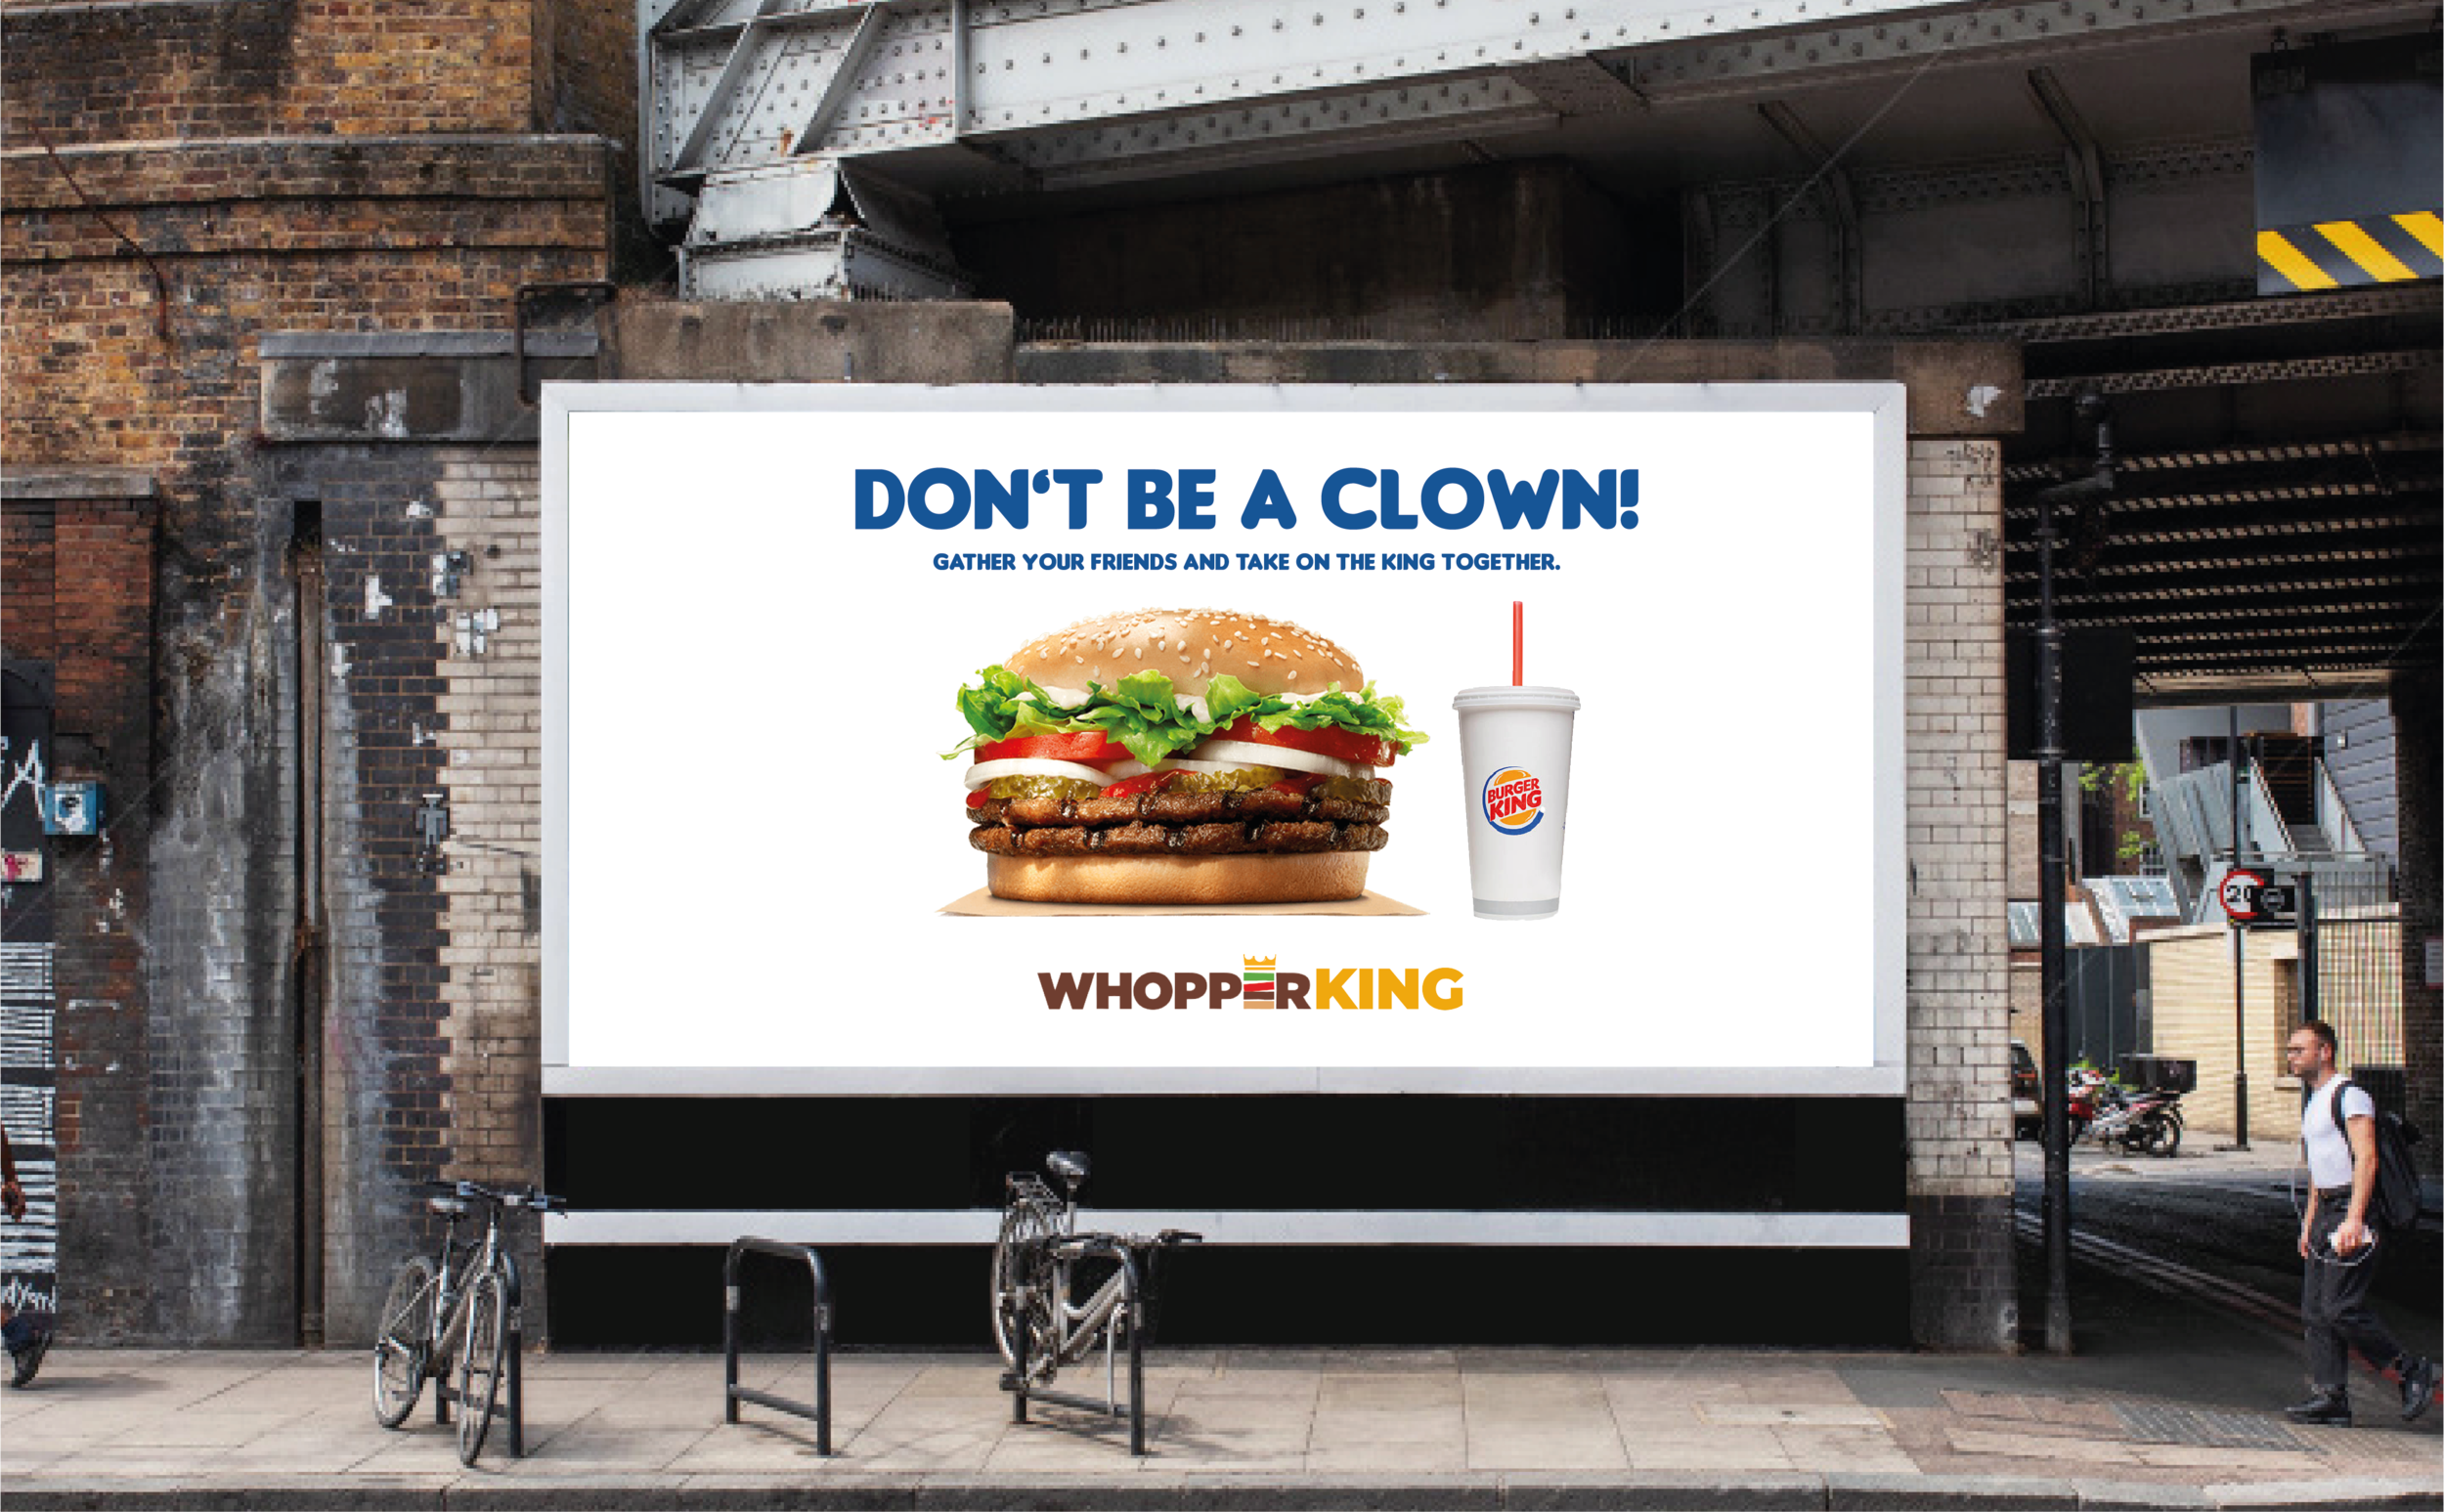 Whopperkingbillboard2.1.png